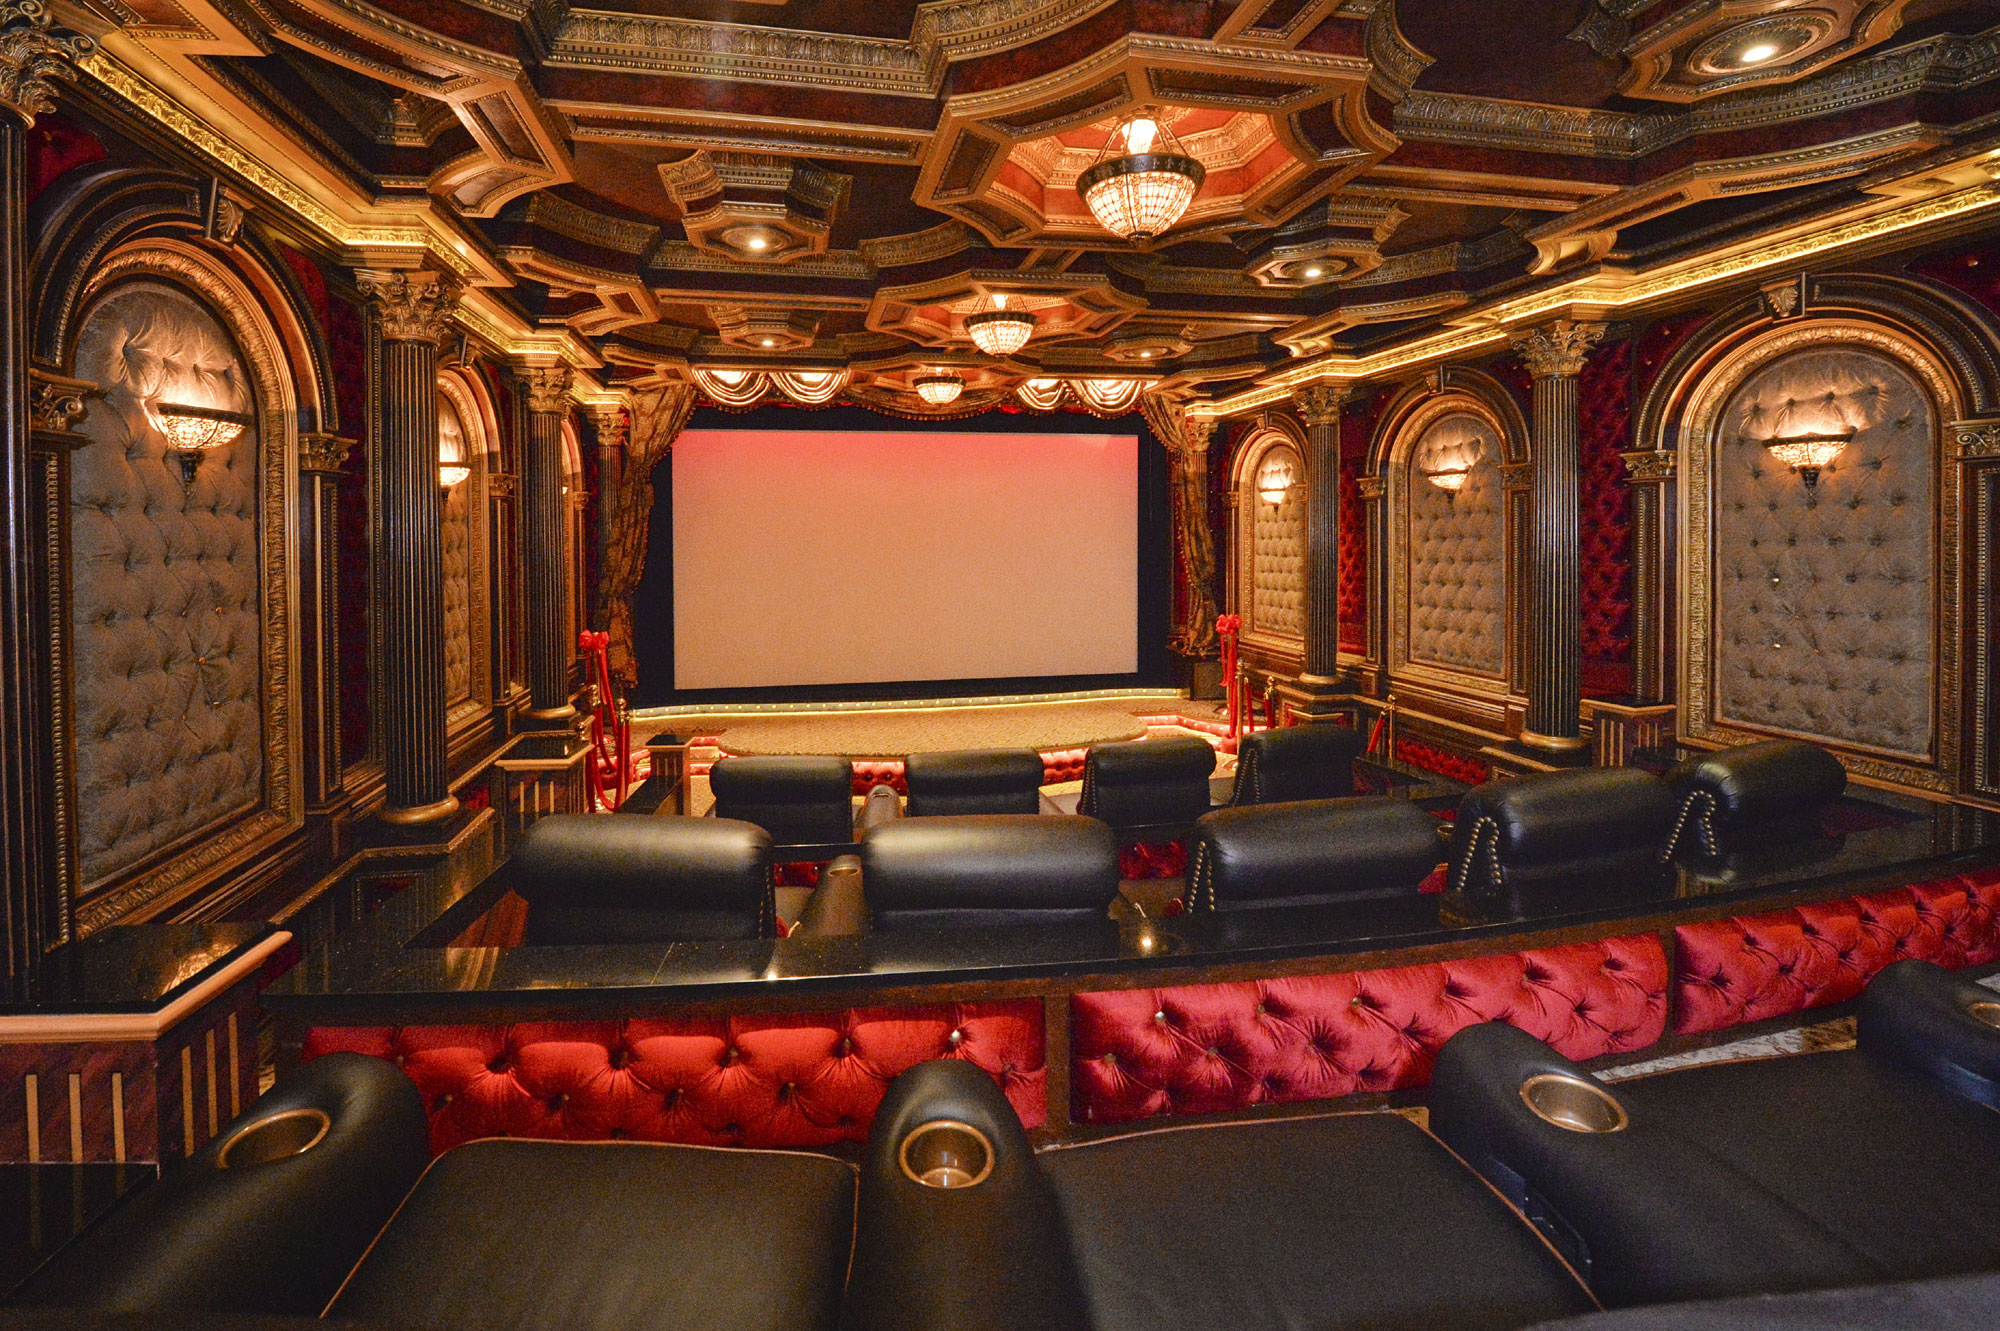 Framed by a beautiful Art-Deco inspired theater, this elegant home's commercial-grade screen and projection system is valued at around $80,000. Wall sconces, Corinthian columns, and a decorative ceiling create an Old Hollywood atmosphere.